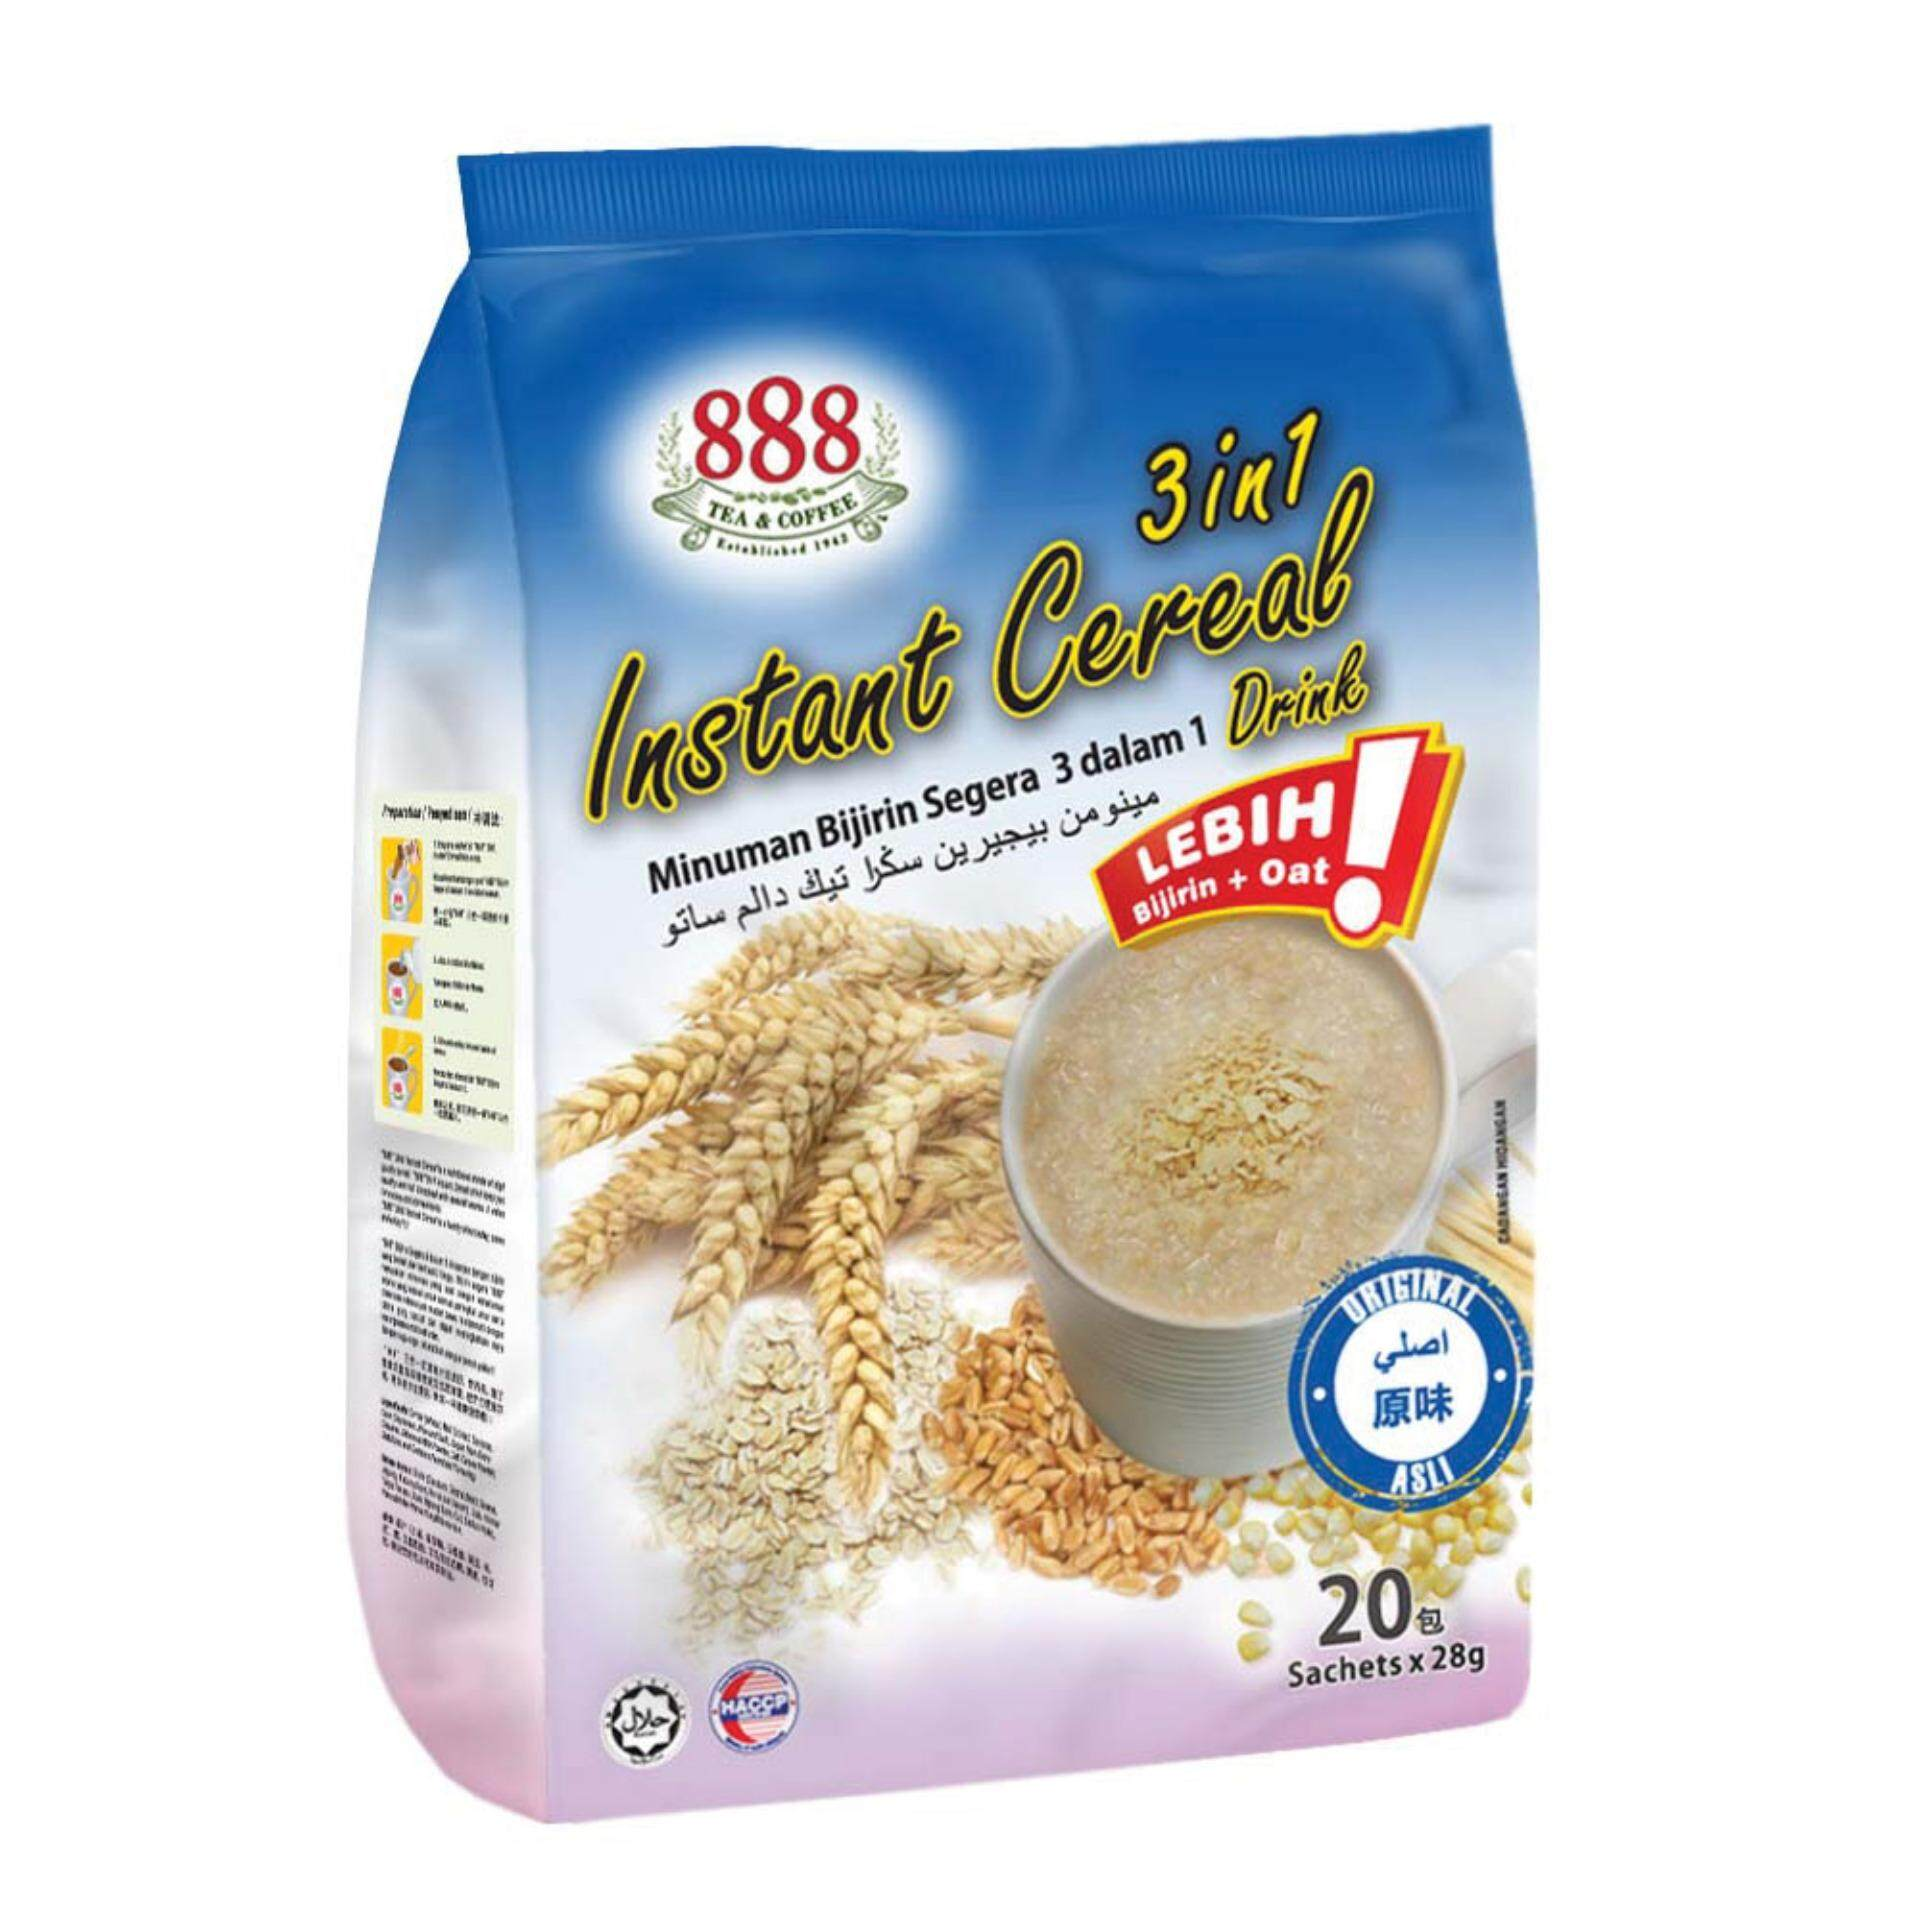 888 3 in 1 Instant Cereal - Original (28g x 20 Sachets)